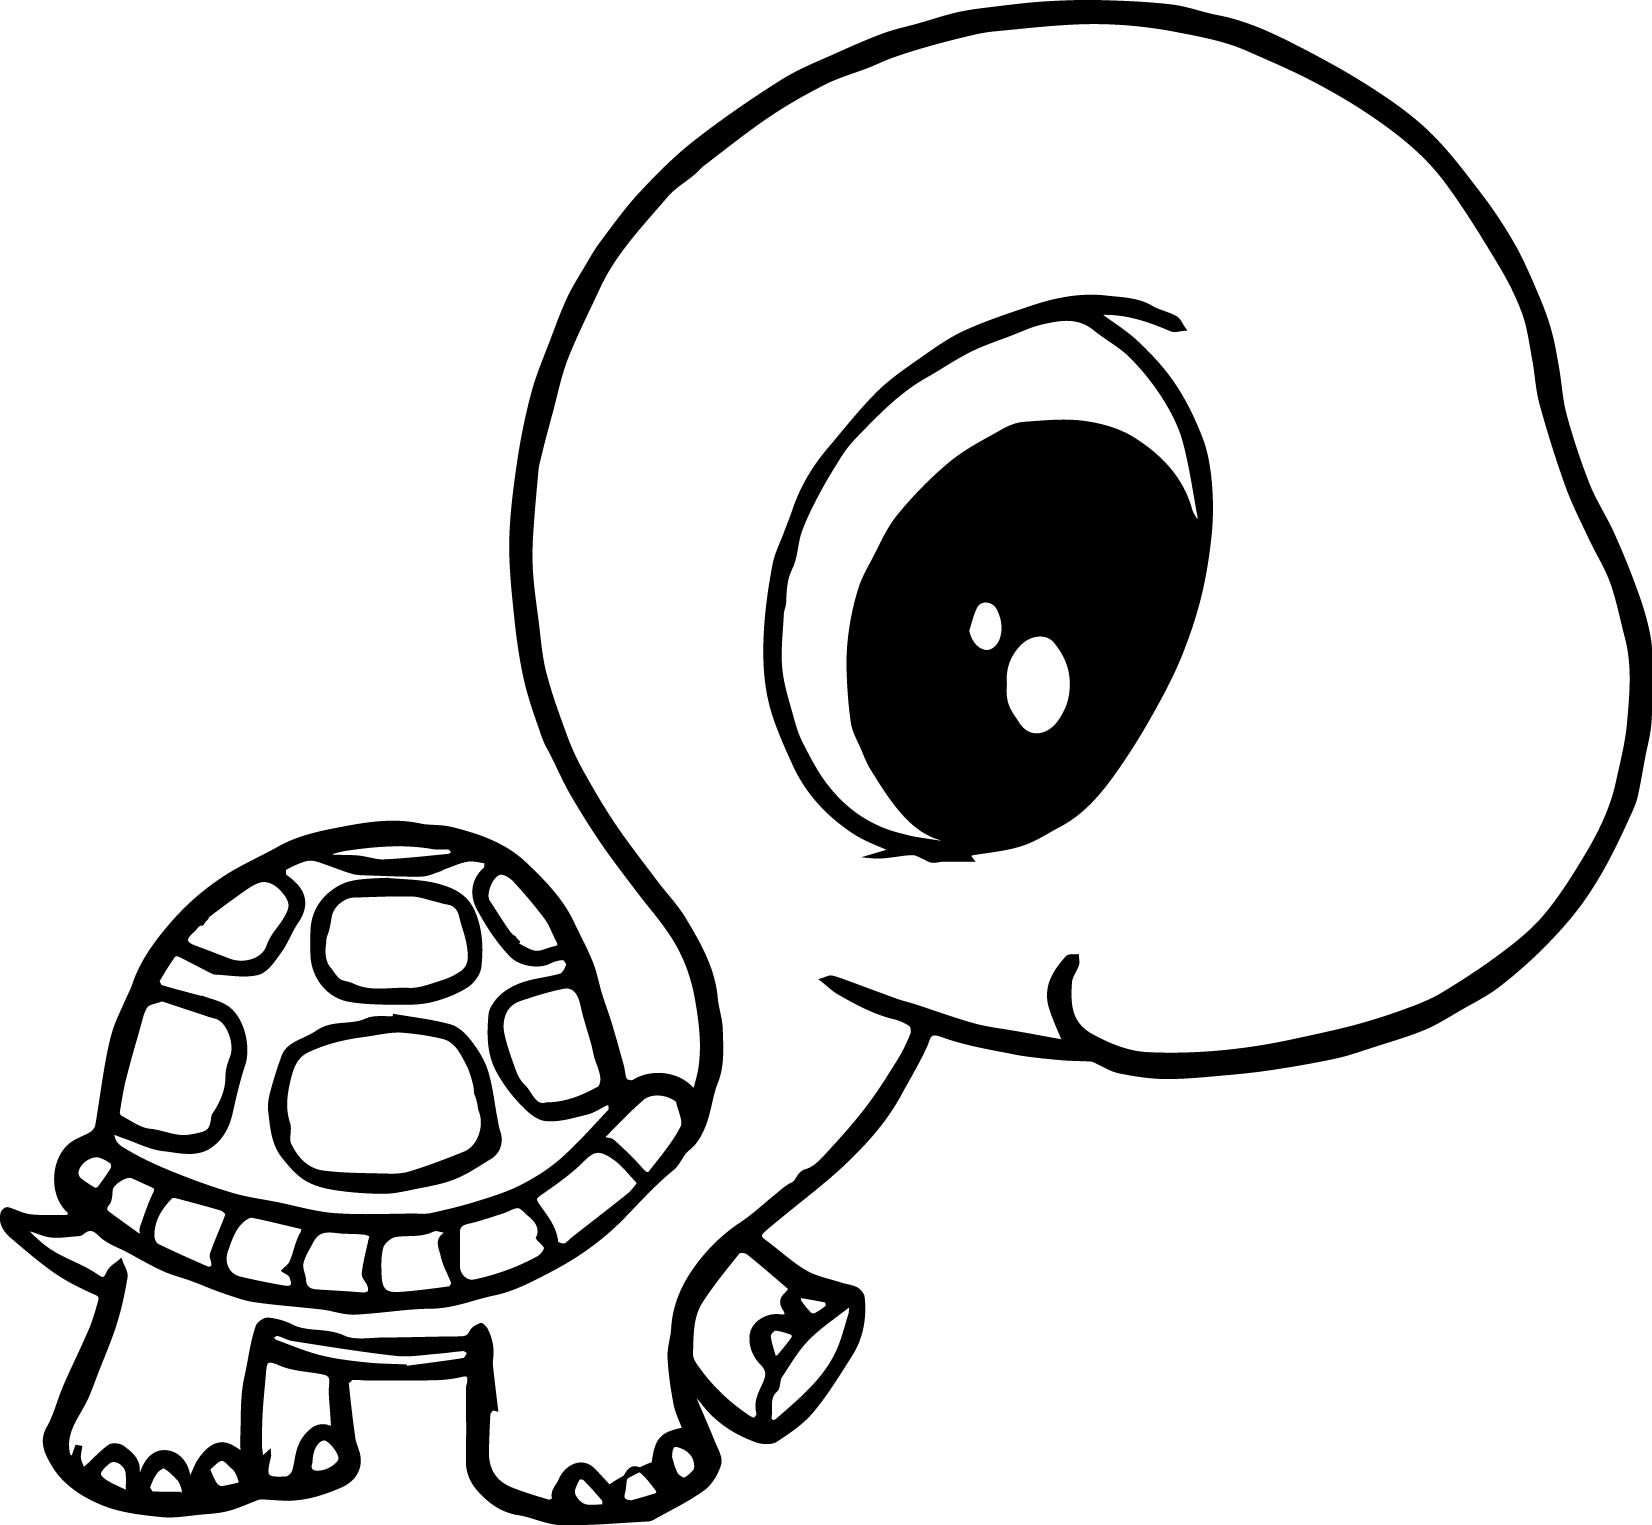 1652x1525 Leatherback Sea Turtle Drawing At Getdrawings Com Free For Baby